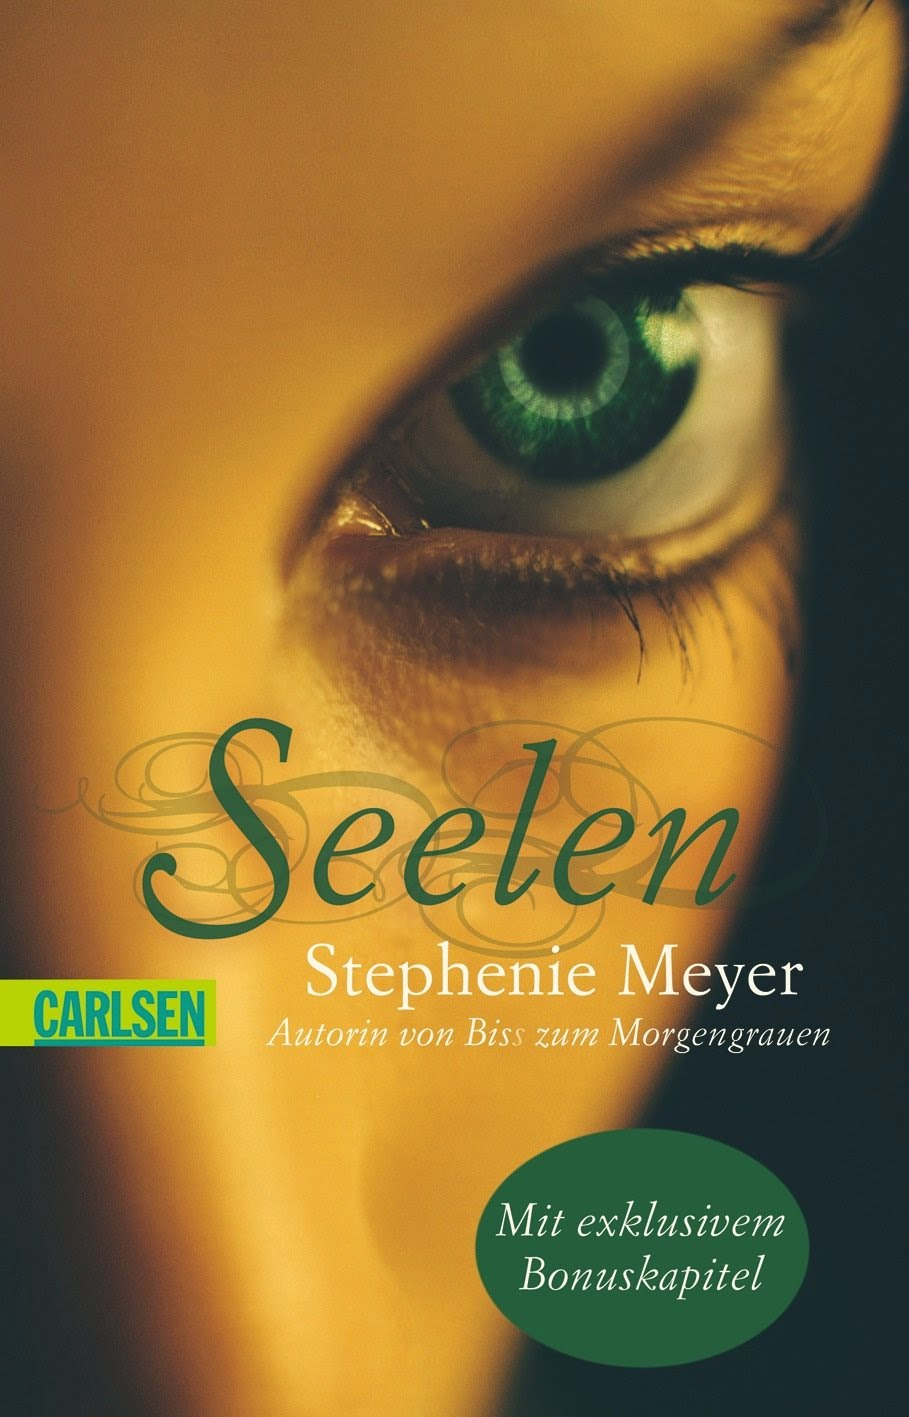 http://www.amazon.de/Seelen-Stephenie-Meyer/dp/355131036X/ref=sr_1_3?ie=UTF8&qid=1427097403&sr=8-3&keywords=seelen